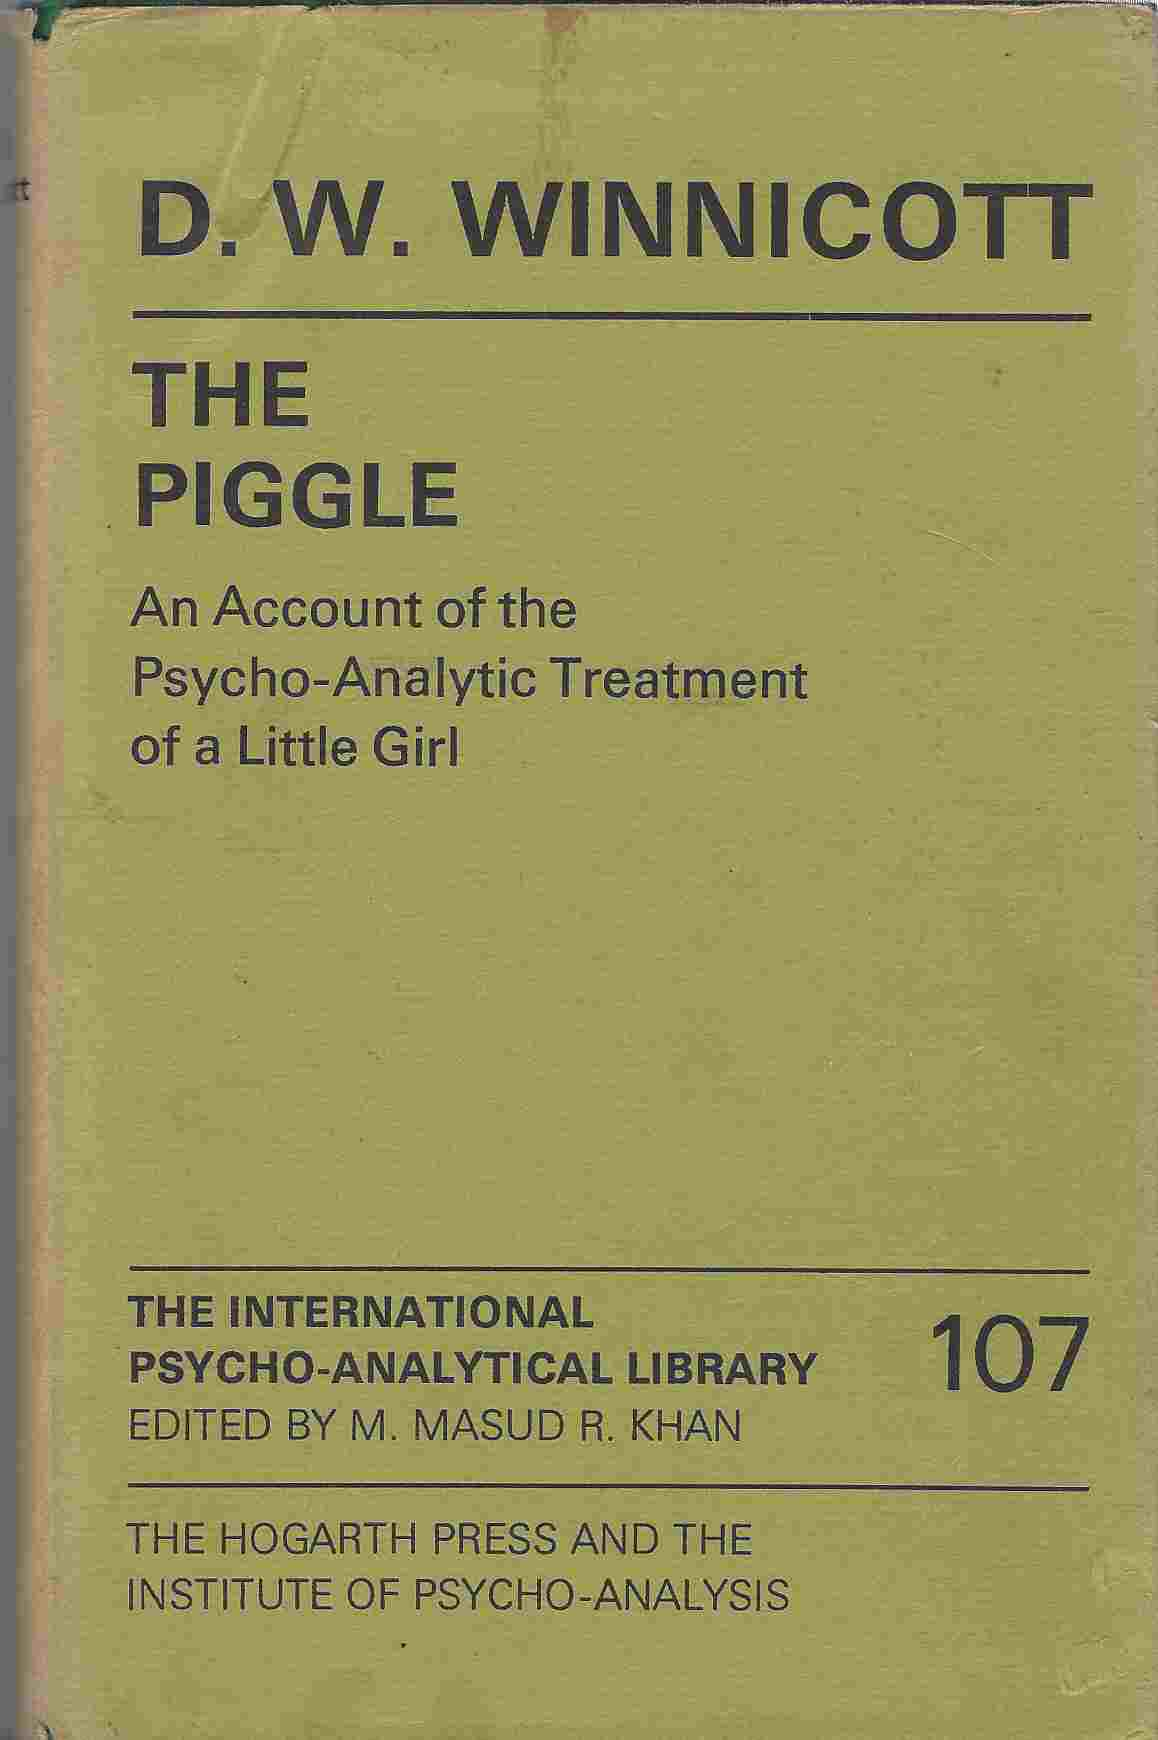 Image for The Piggle An Account of the Psychoanalytic Treatment of a Little Girl